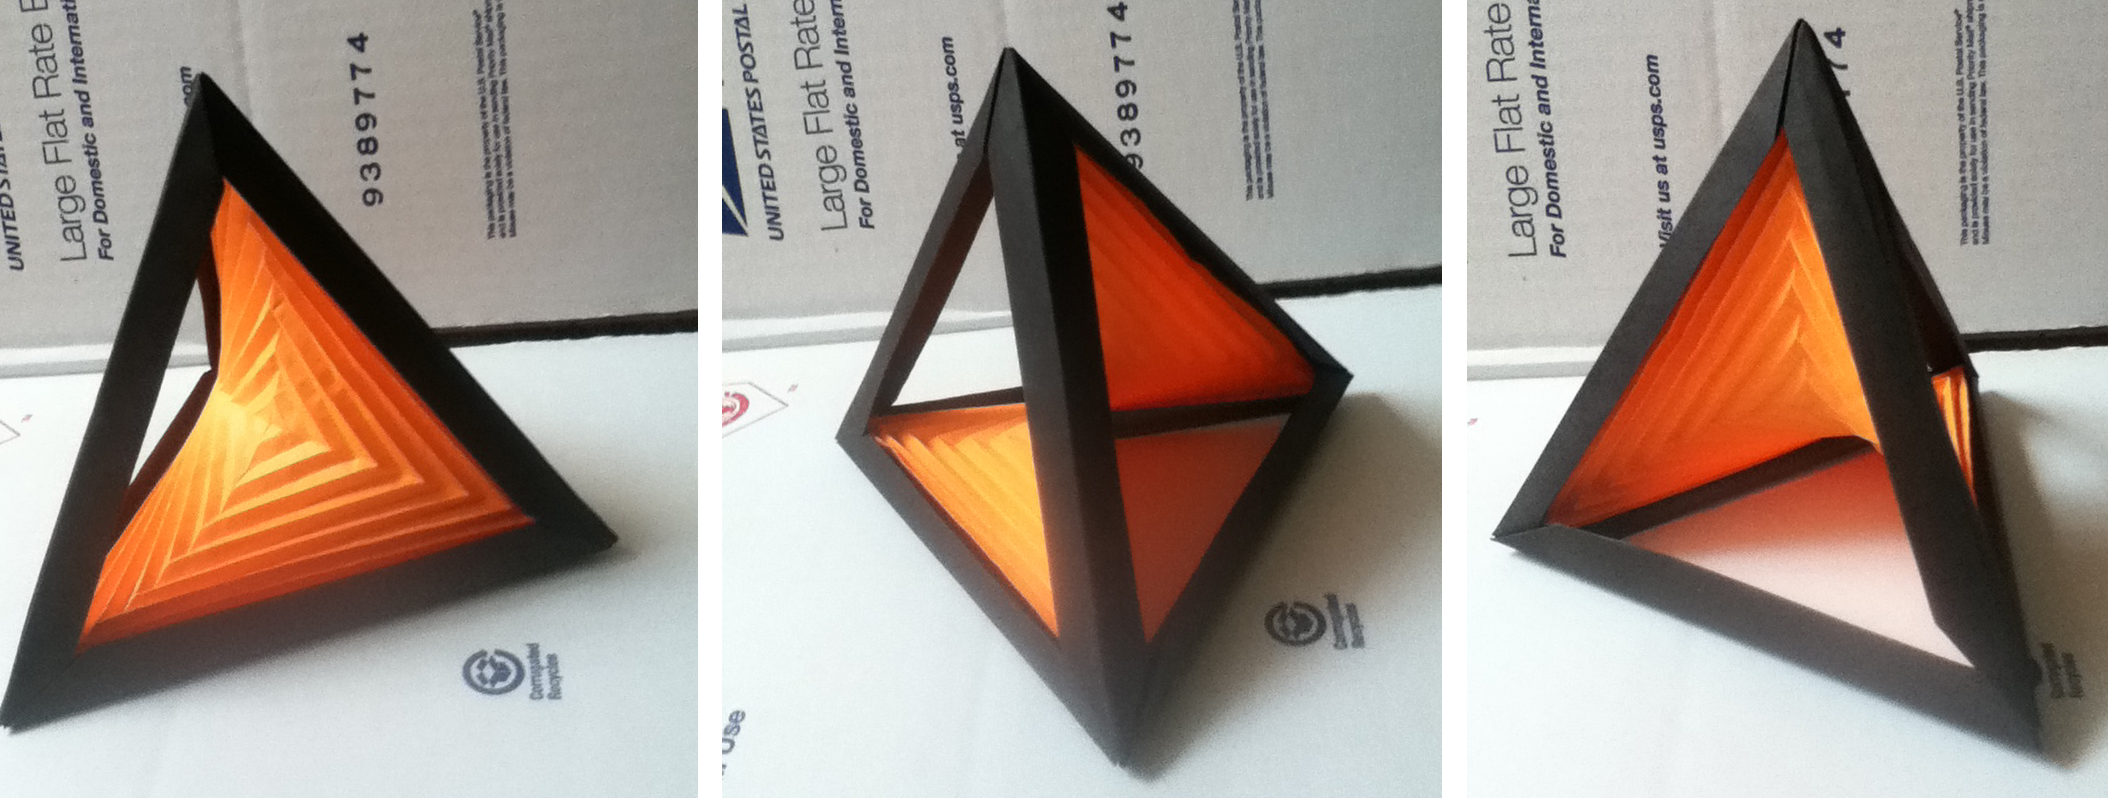 More Crazy Looking But Easy To Make Origami Made4math